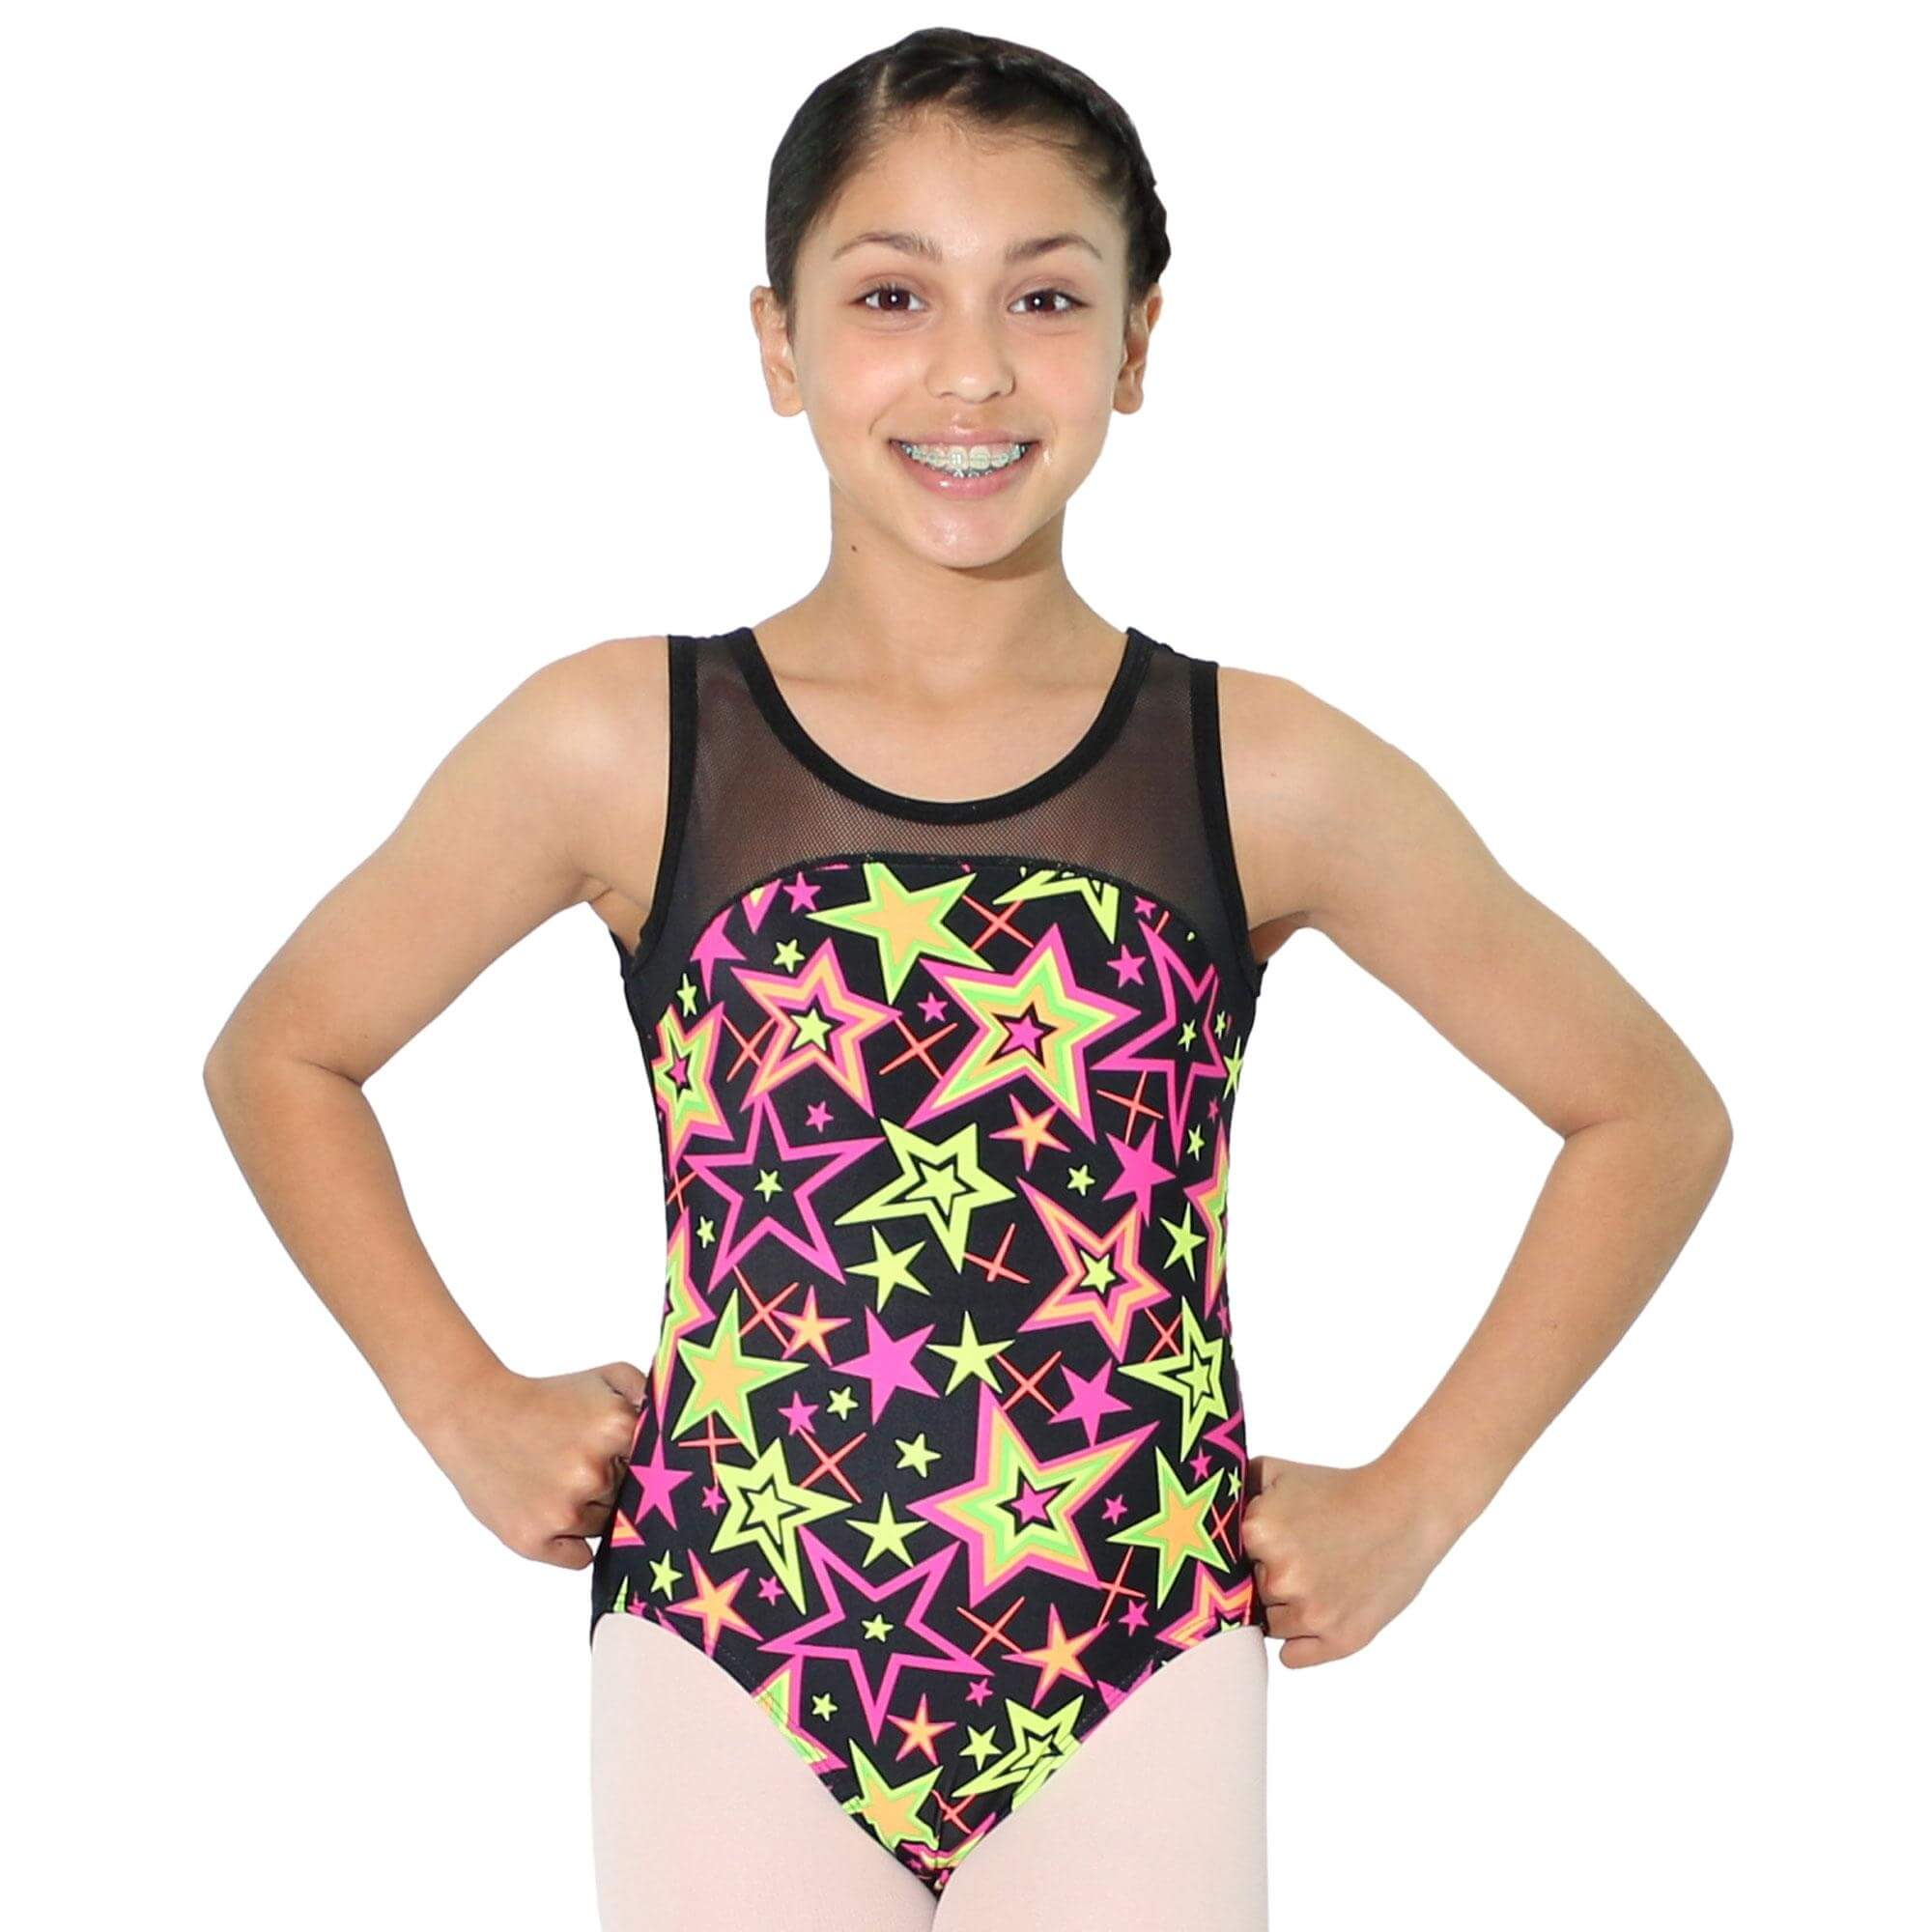 52d5dd35335c Reflectionz: leotards for girls, gymnastics, girls gymnastics ...